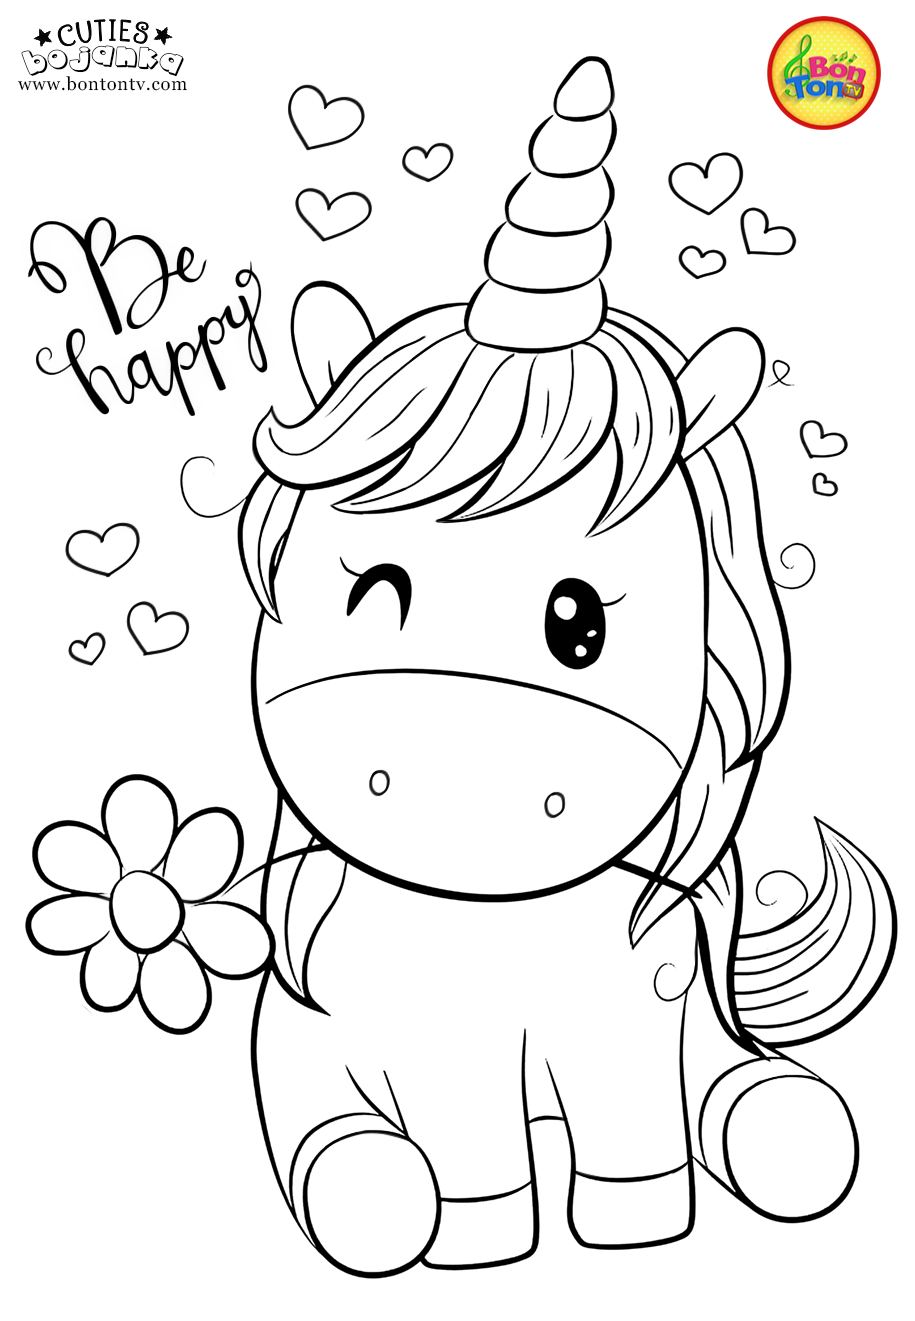 - Cuties Coloring Pages For Kids Free Preschool Printables Unicorn